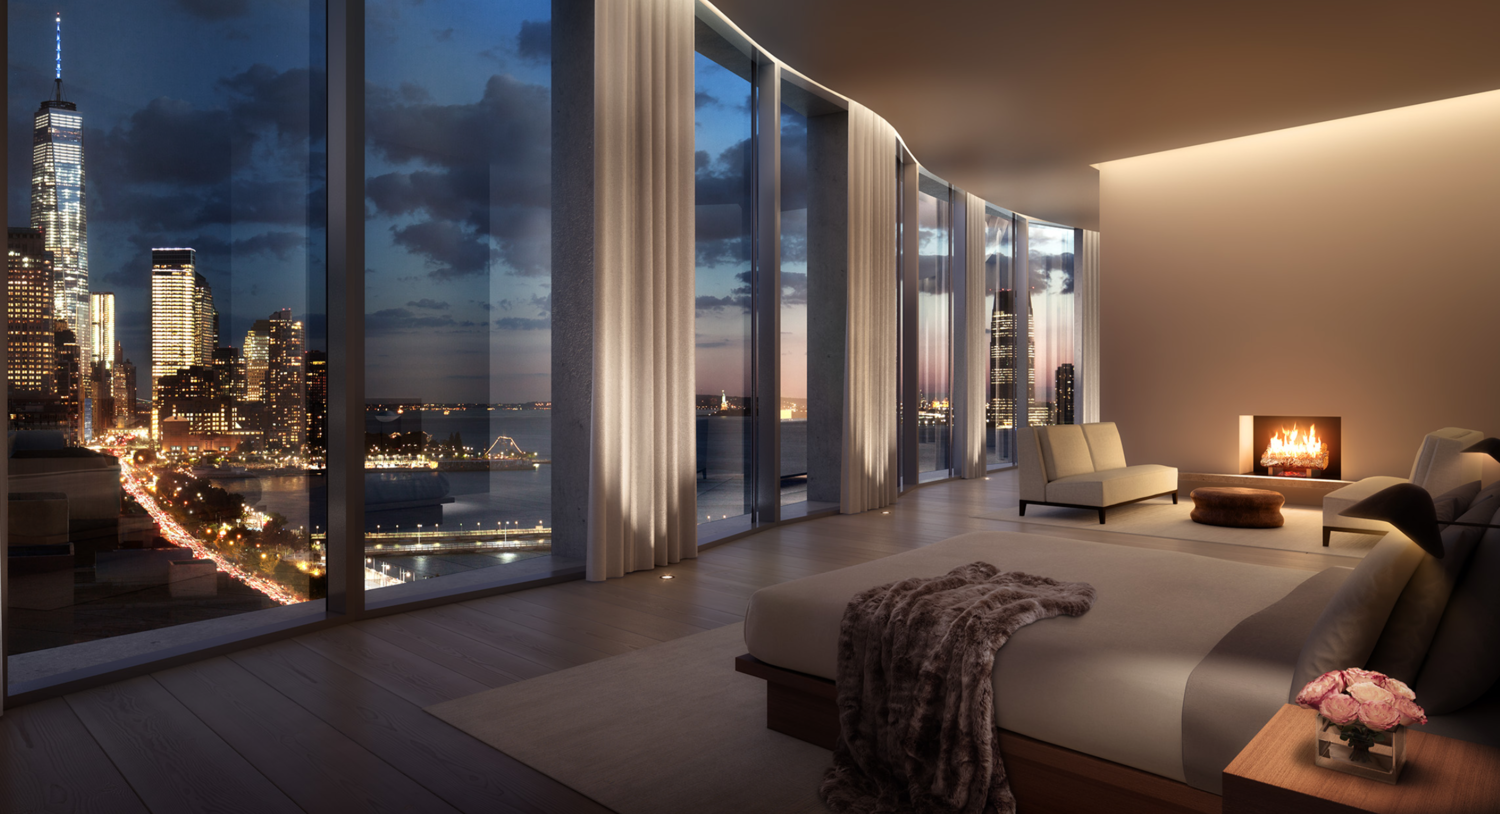 Penthouse South at Ian Schrager's 160 Leroy Under Contract, Was Asking $31.5 Million